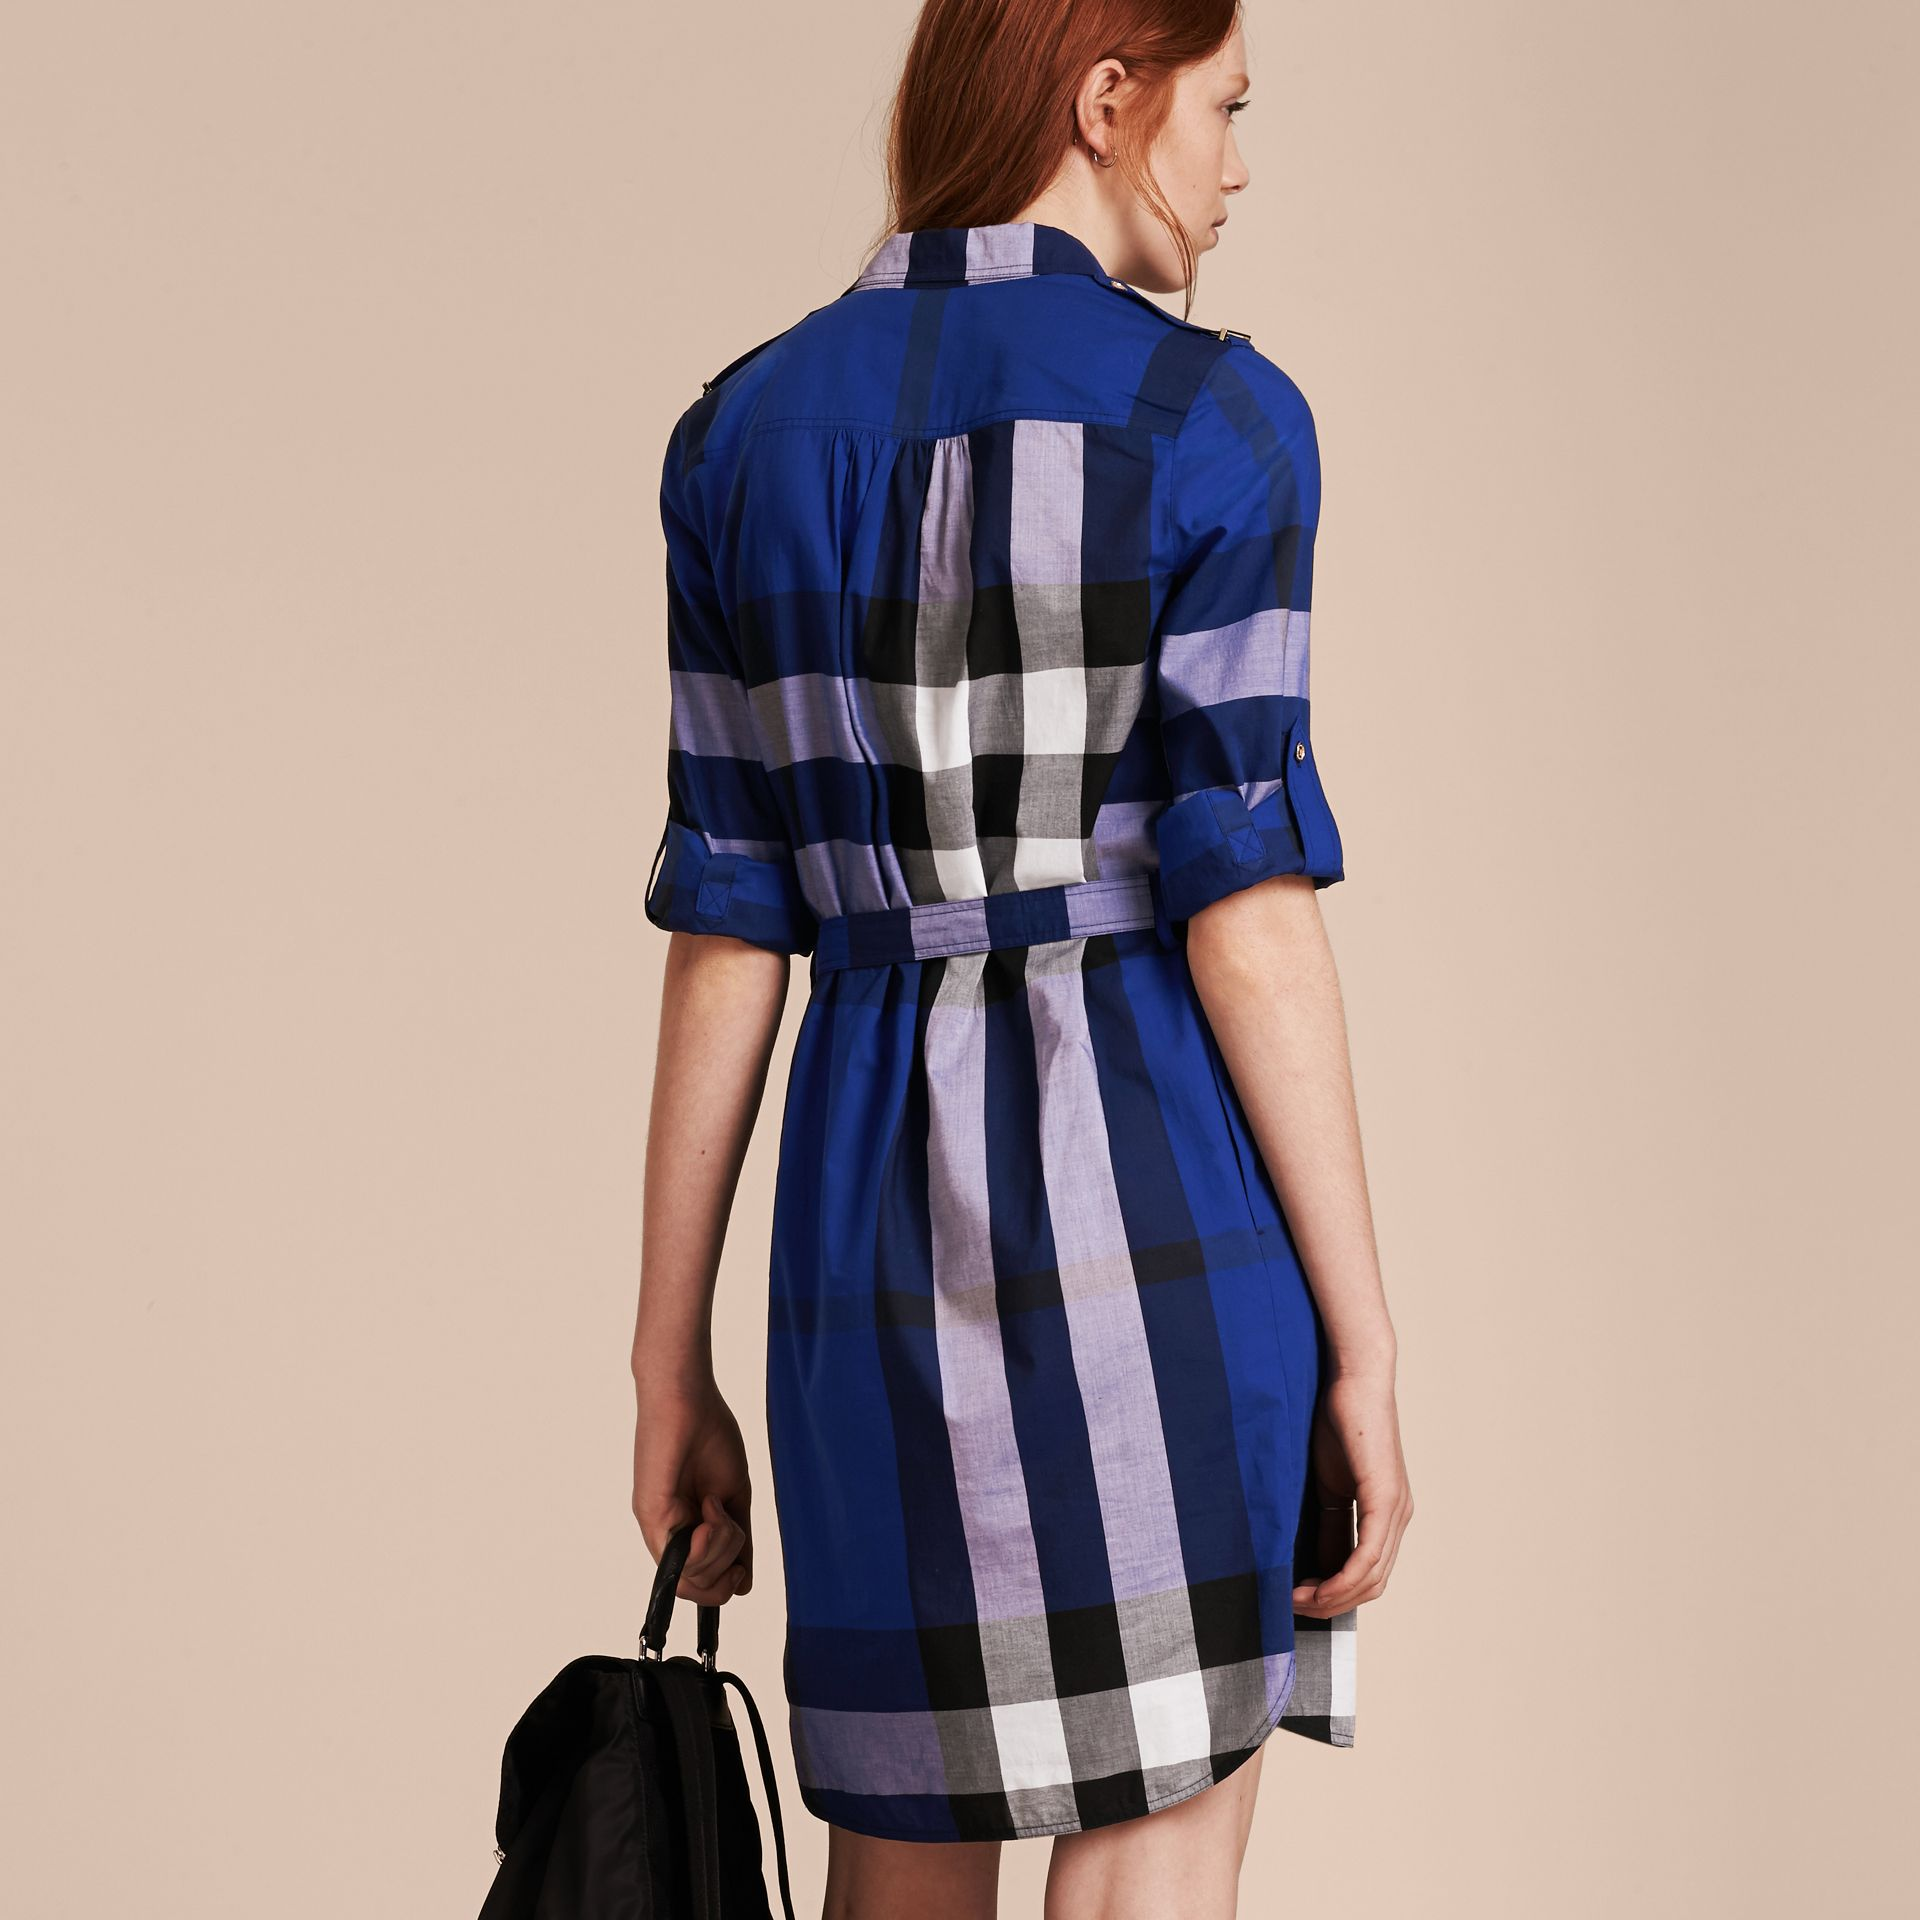 Brilliant blue Check Cotton Shirt Dress Brilliant Blue - gallery image 3